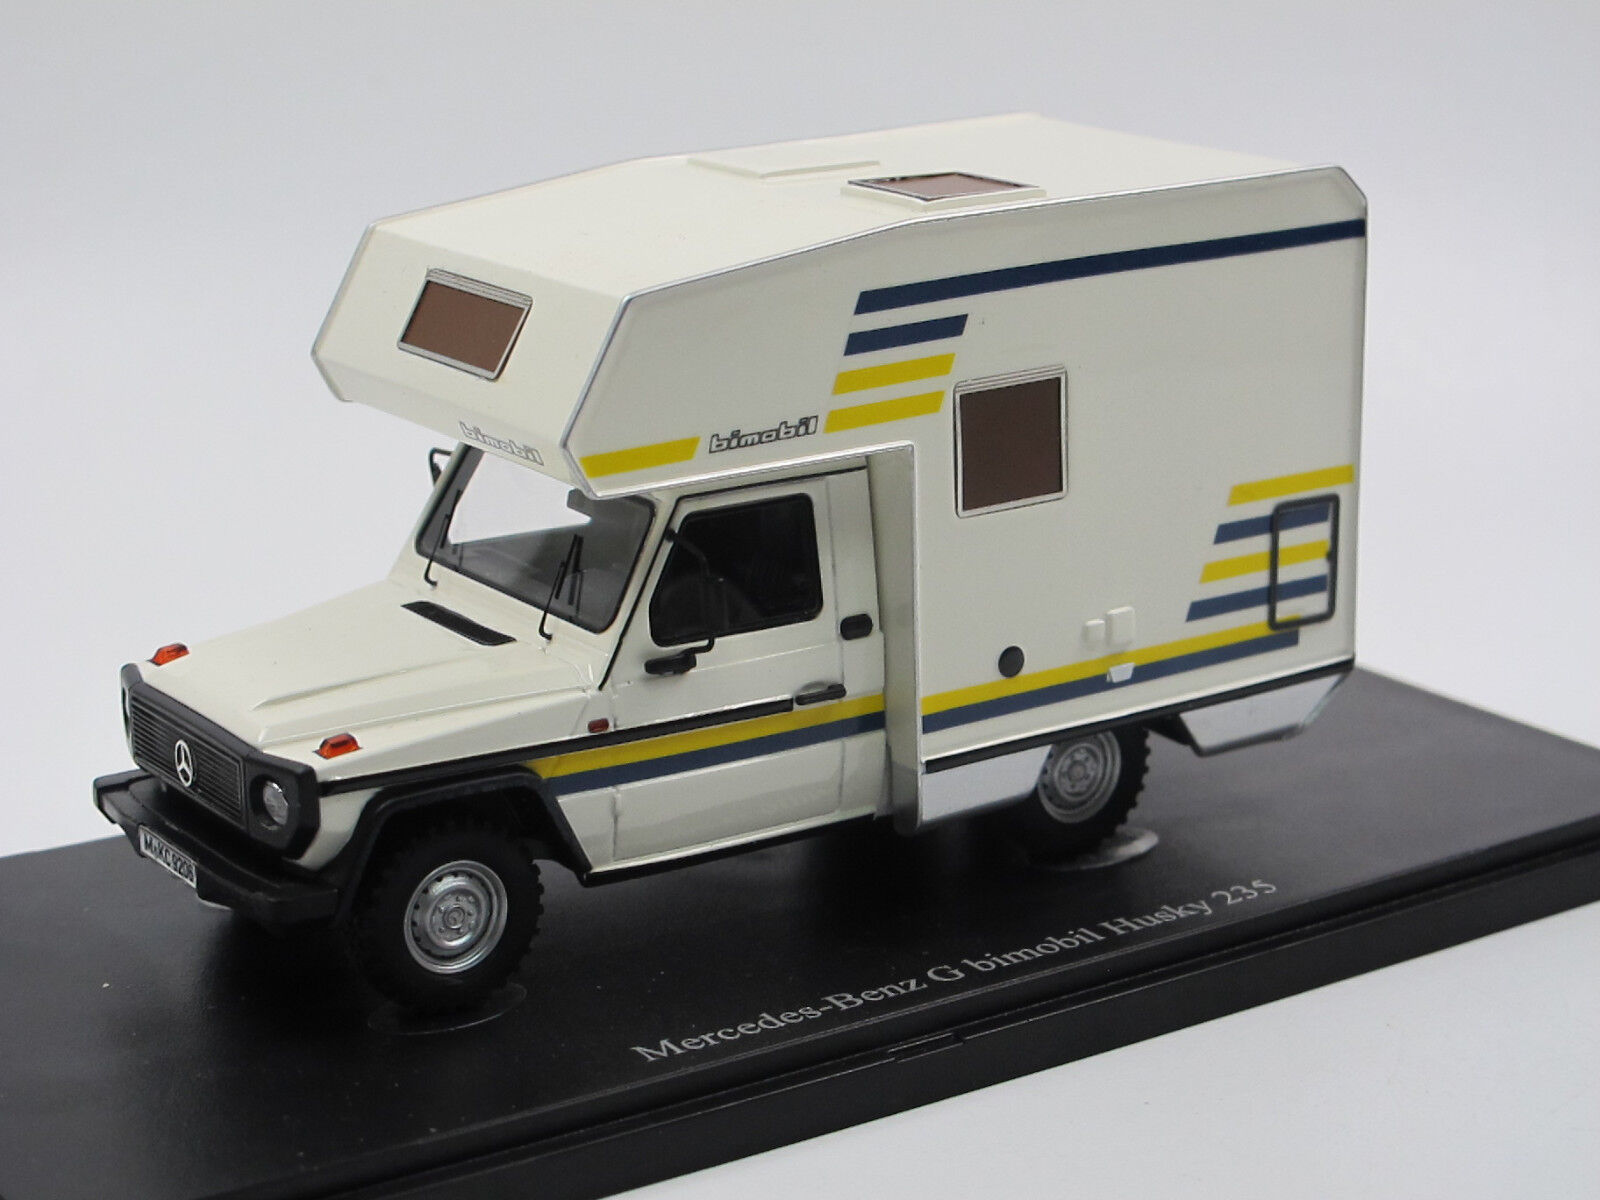 Autocult 09006 Mercedes-Benz G-Model Bimobil Husky 235 Camper 1 43